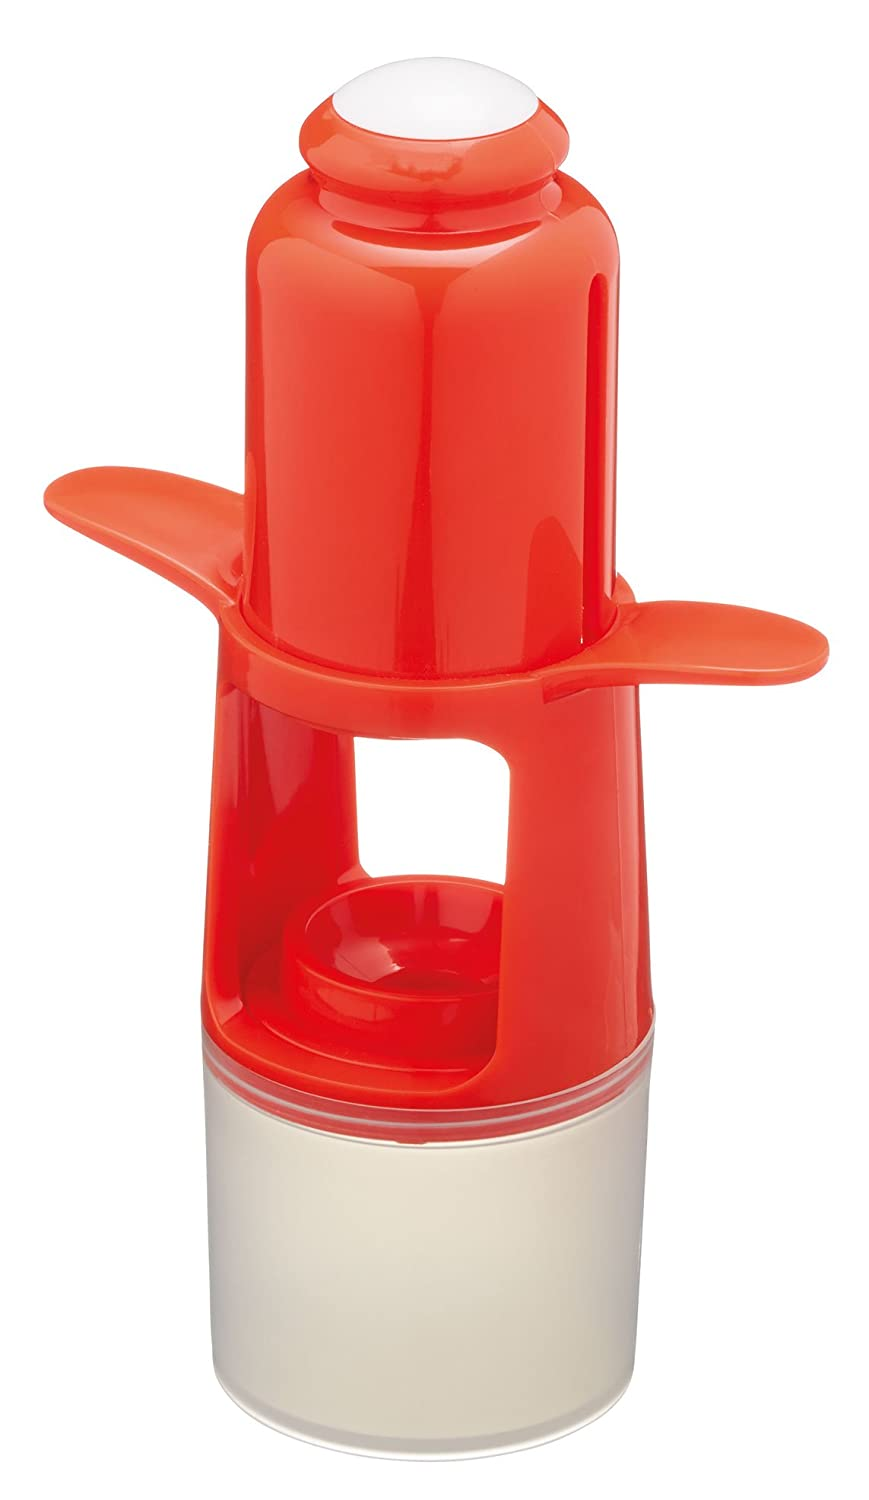 KitchenCraft Healthy Eating 1-Press Cherry Pitter / Olive Stoner – White / Red KCHECP